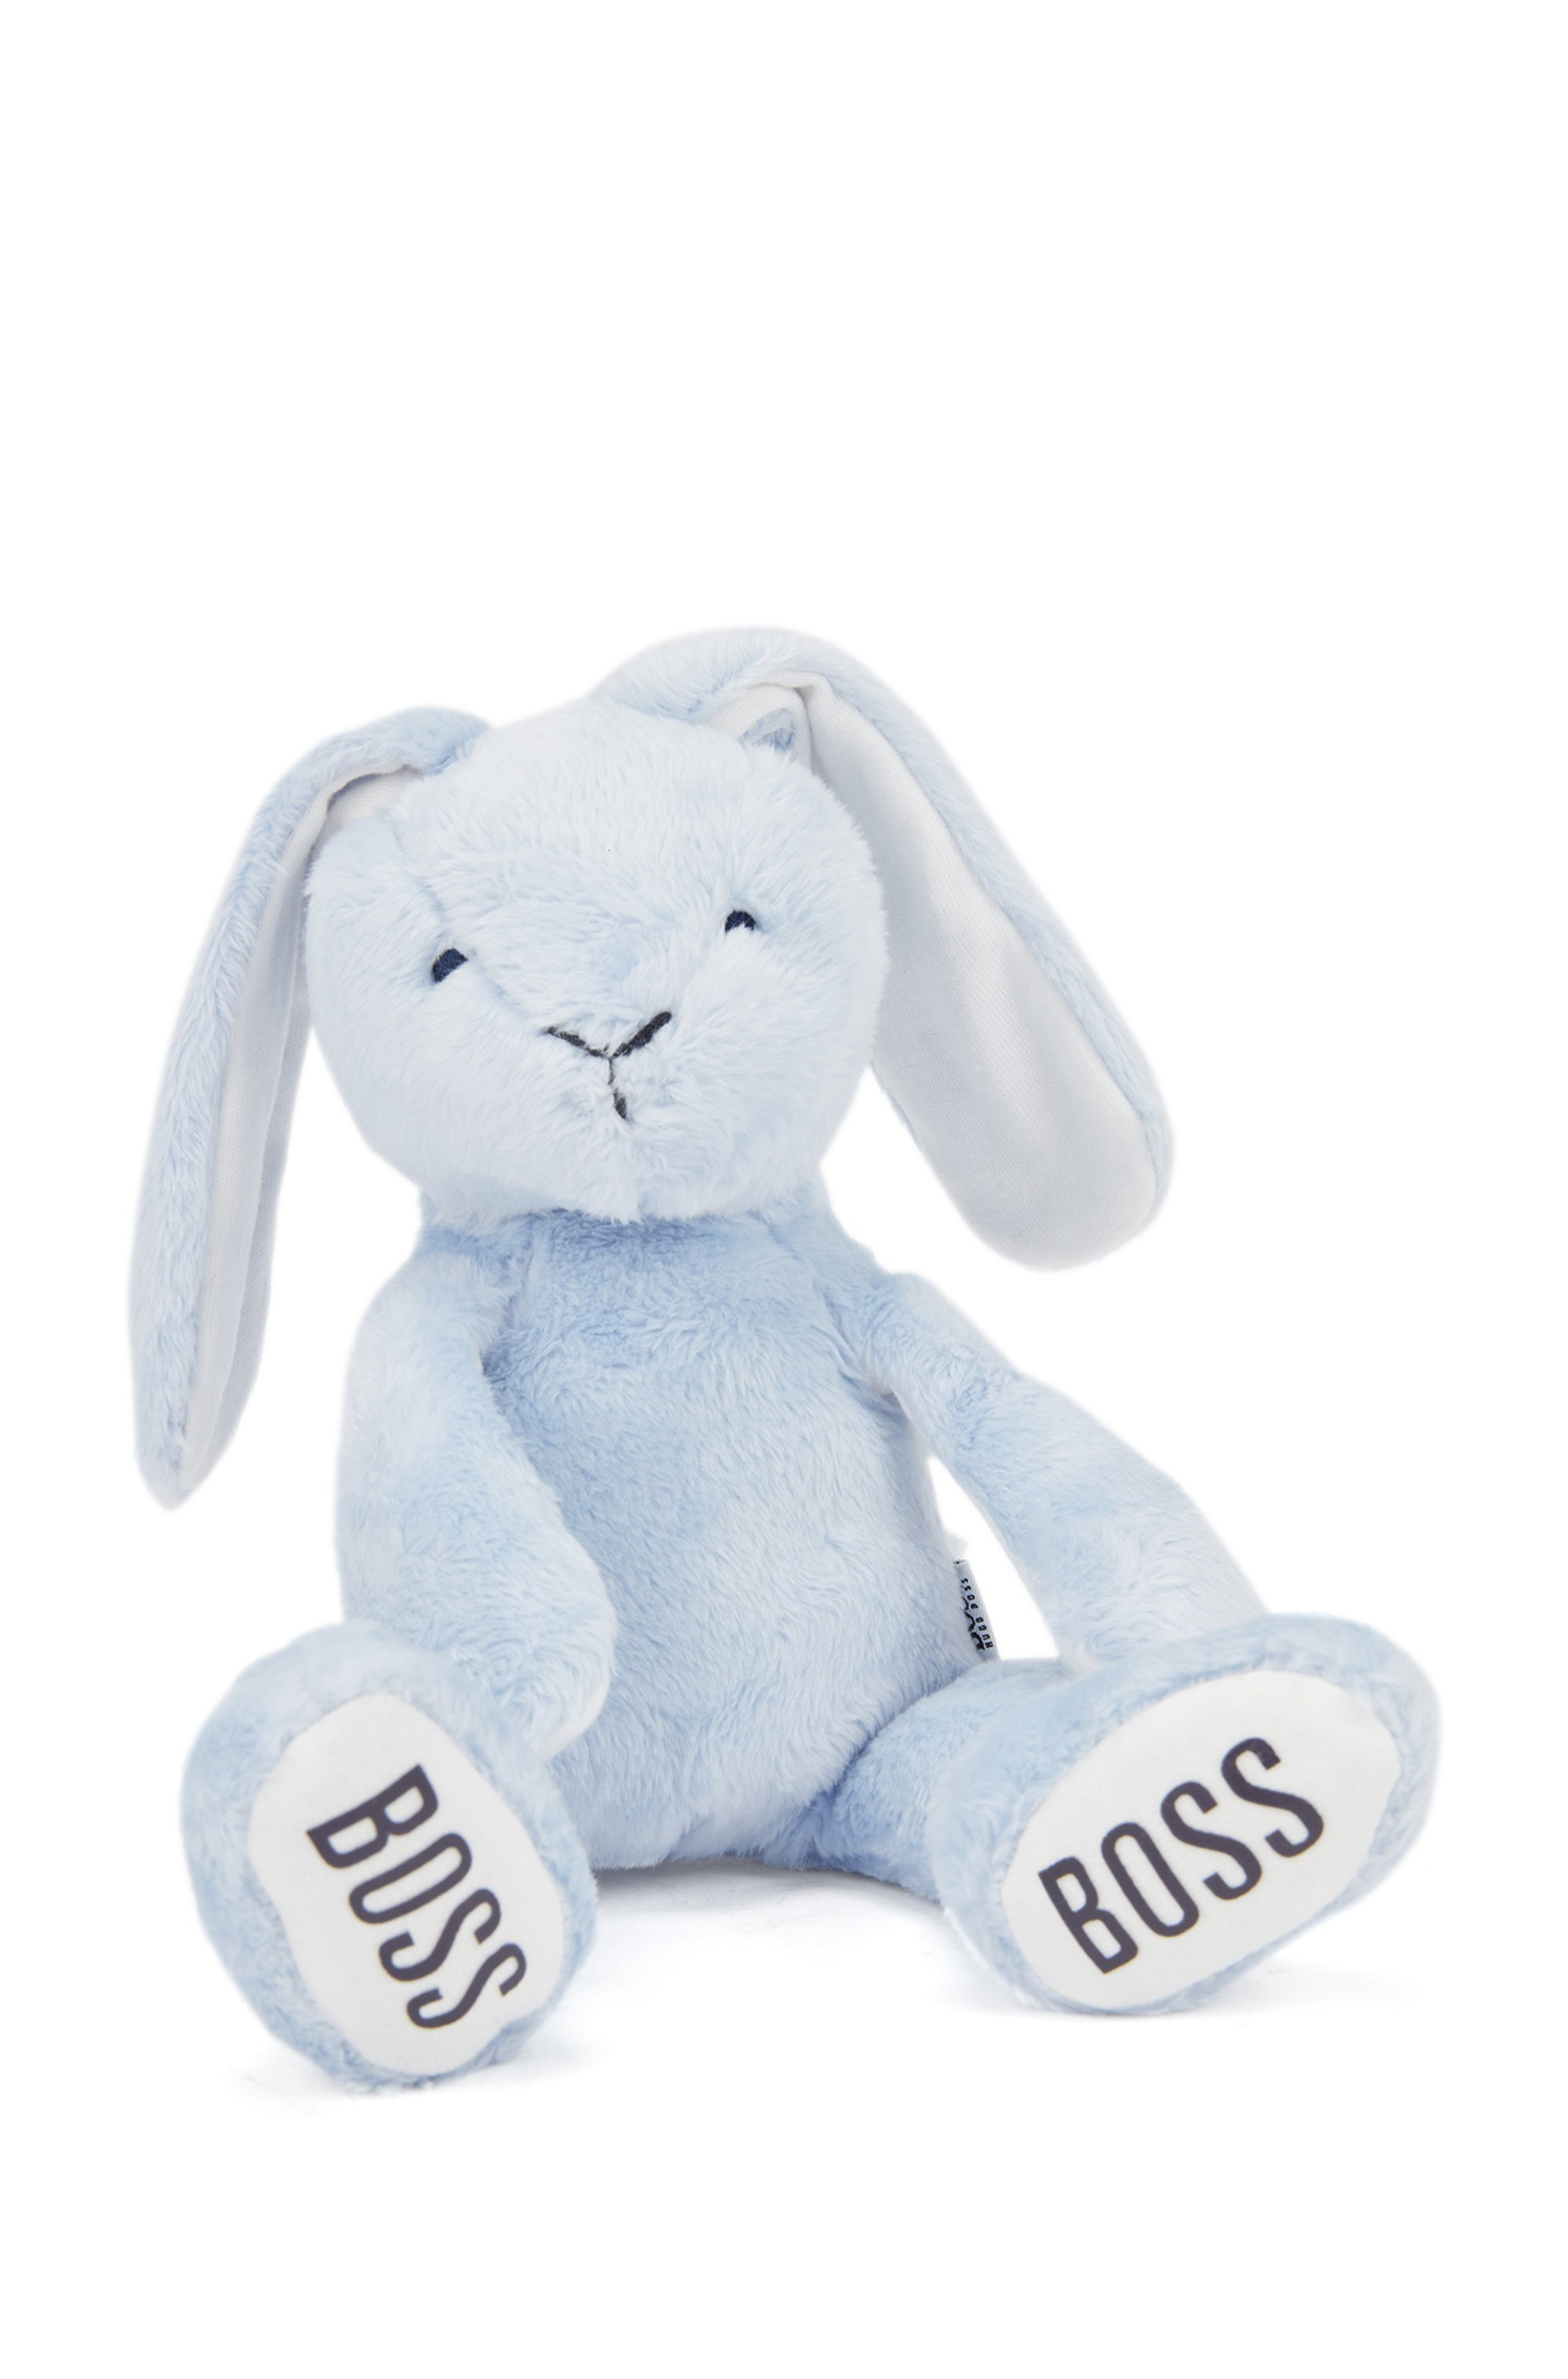 Baby bunny toy in faux fur with printed logos, Light Blue